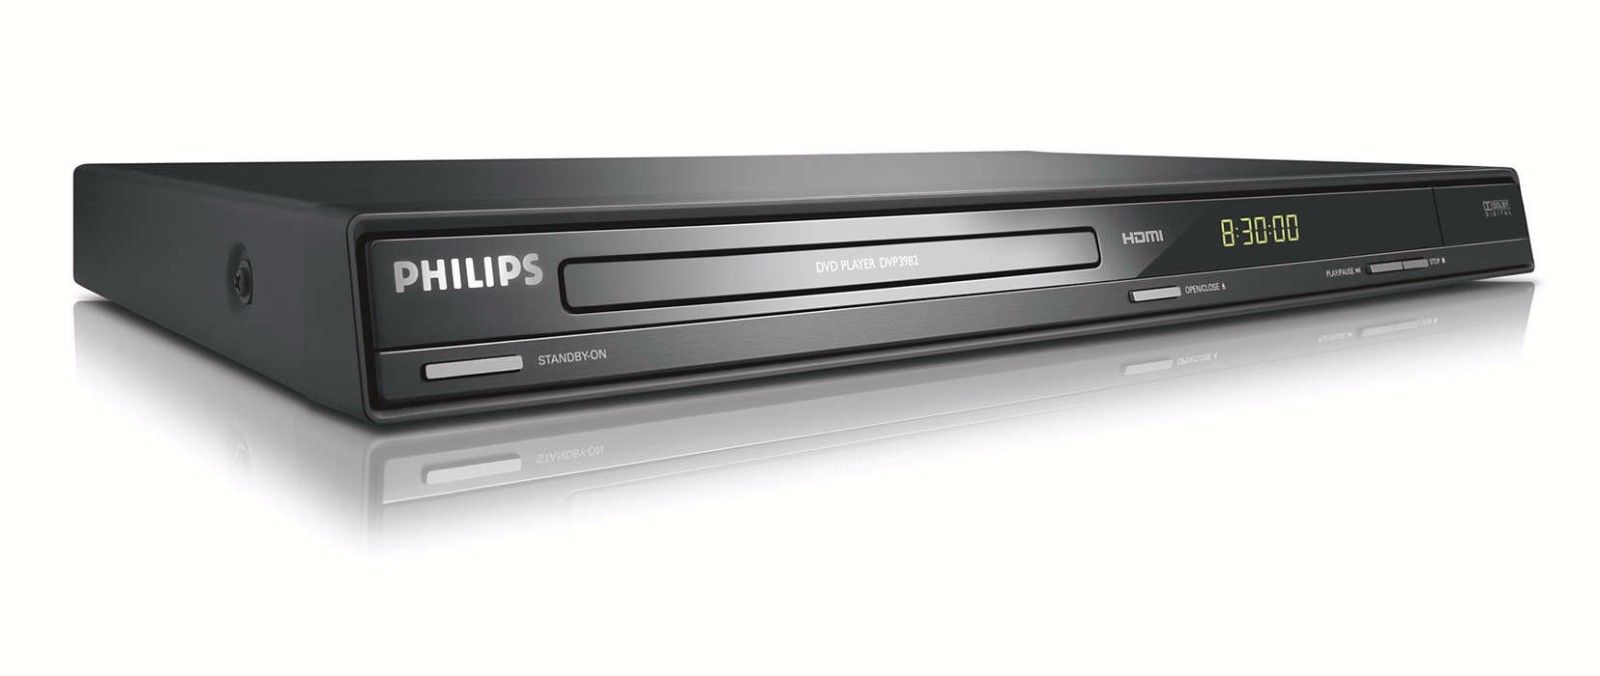 PHILIPS DVP3982 F7 DVD Player w 1080p HDMI upconversion & DivX Playback (Refurbished) by Philips